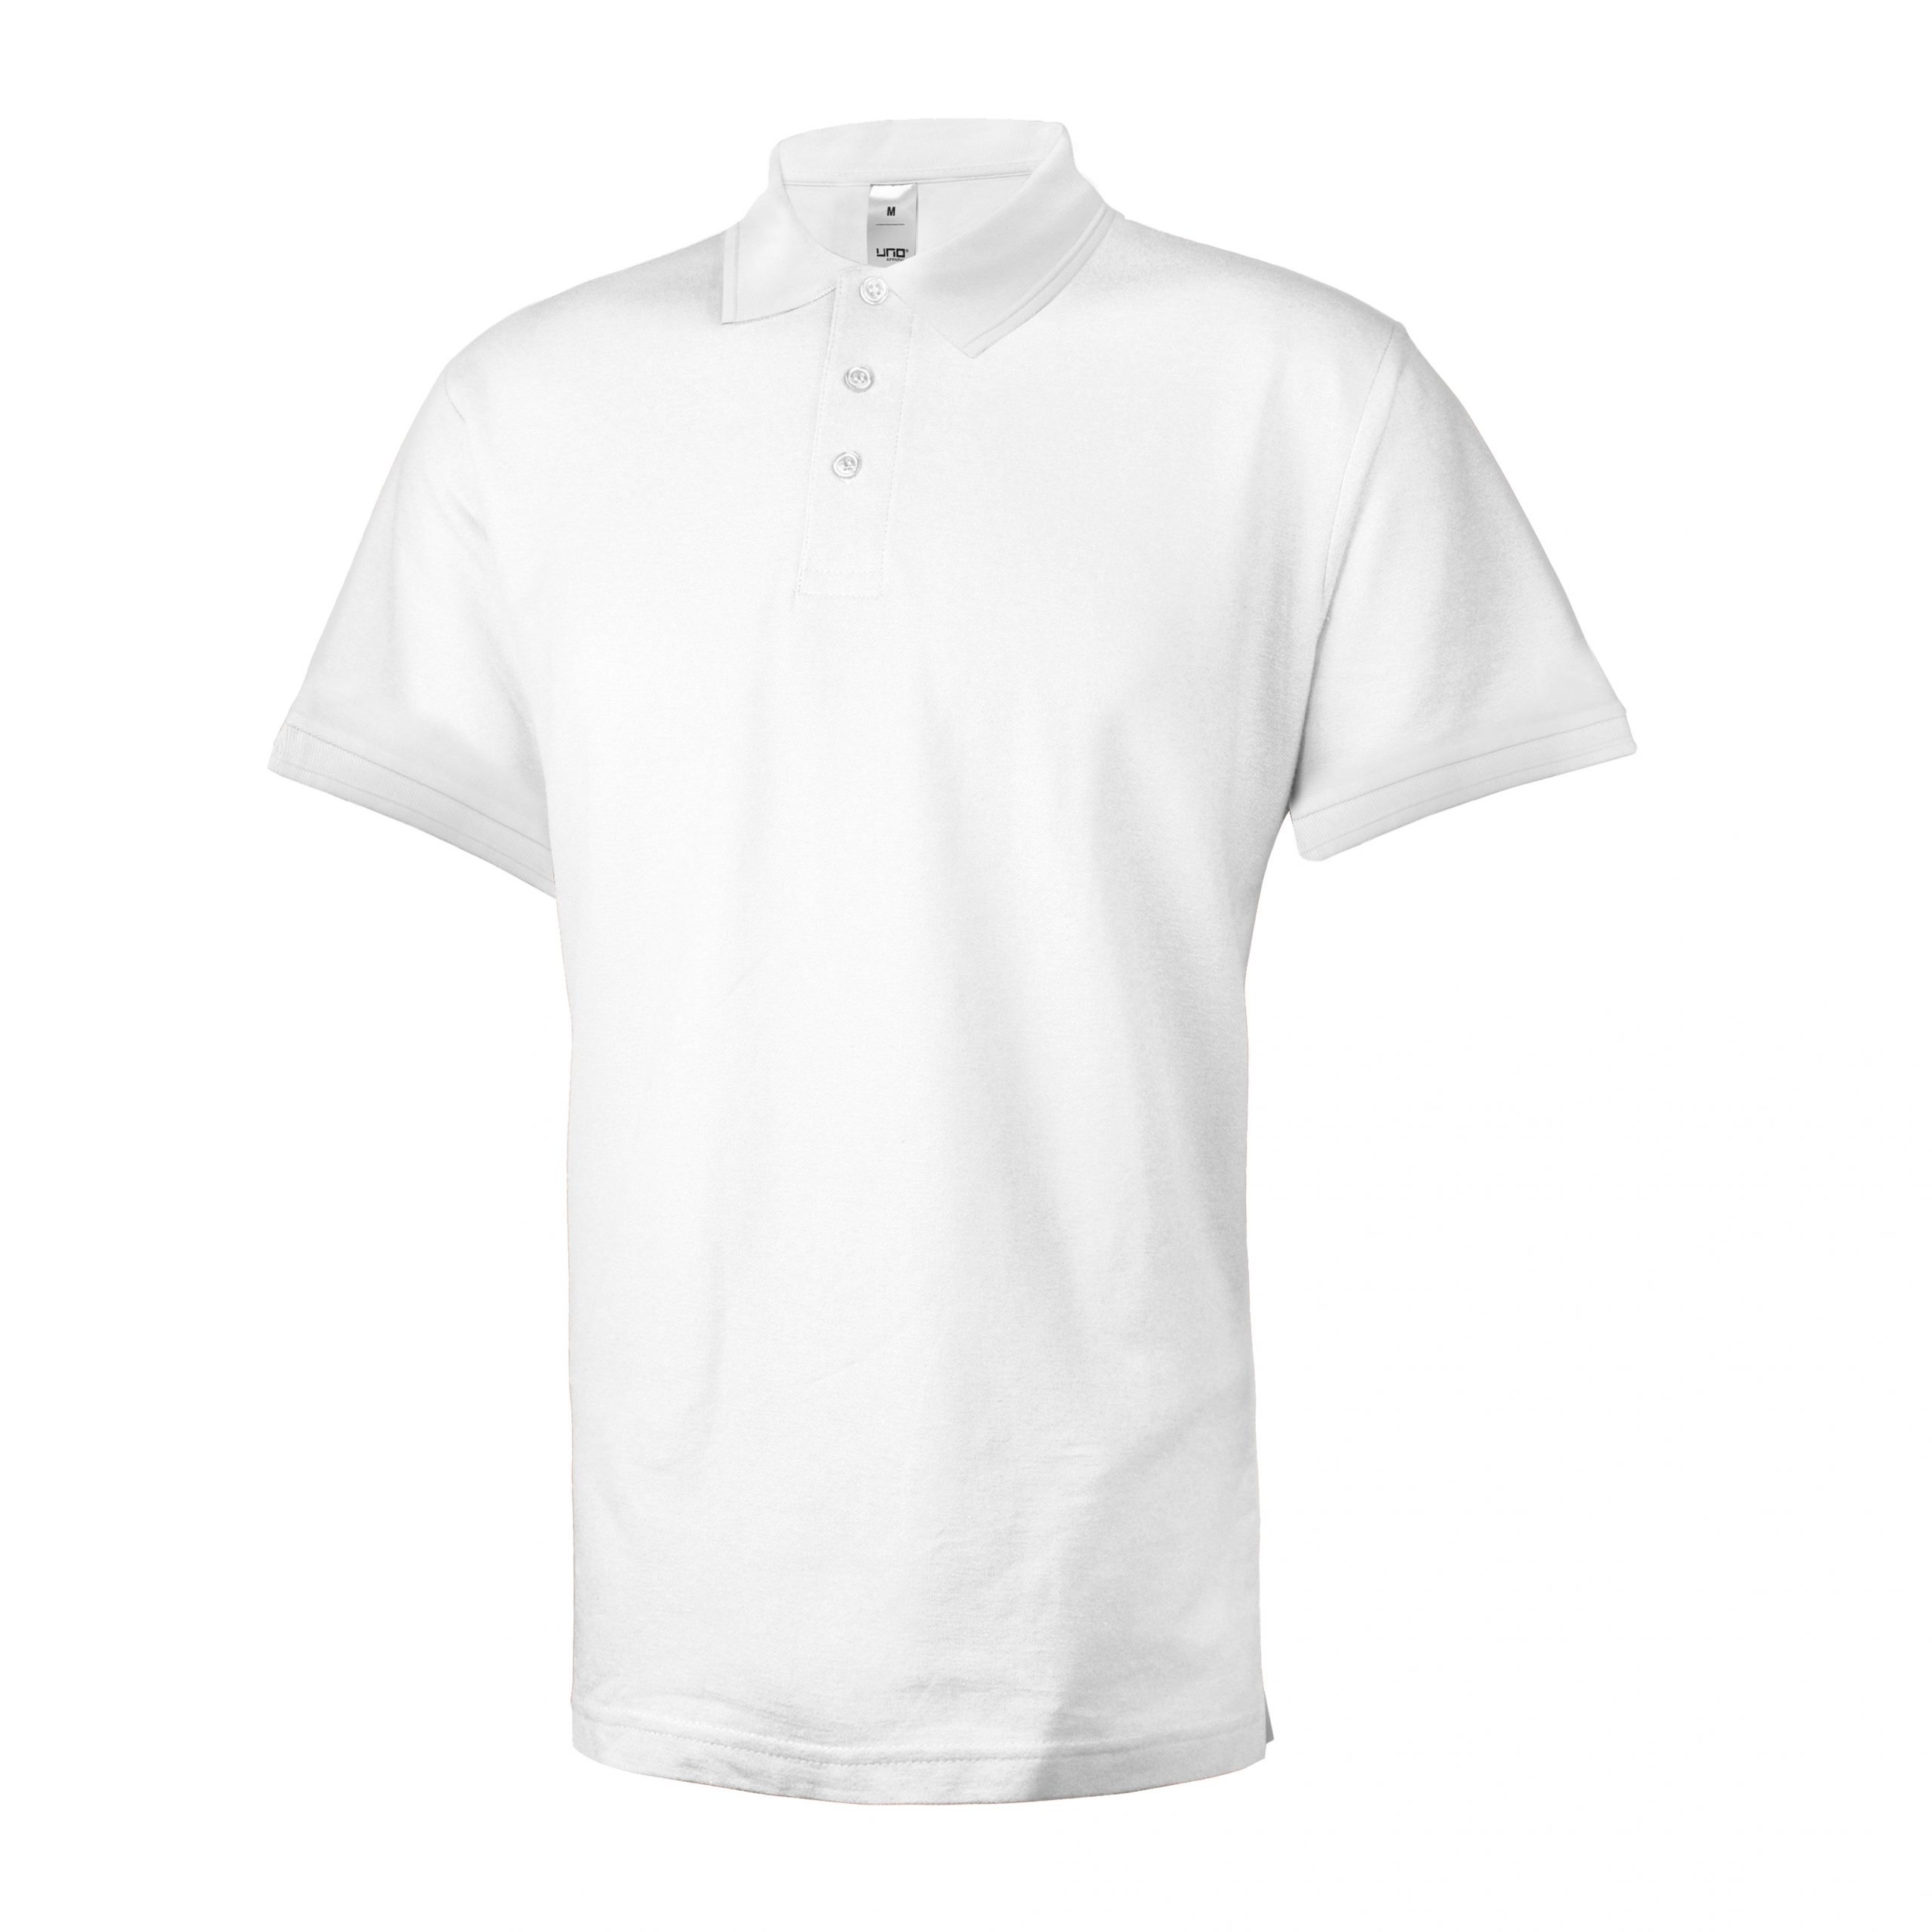 Supremo CVC Polo T-Shirt